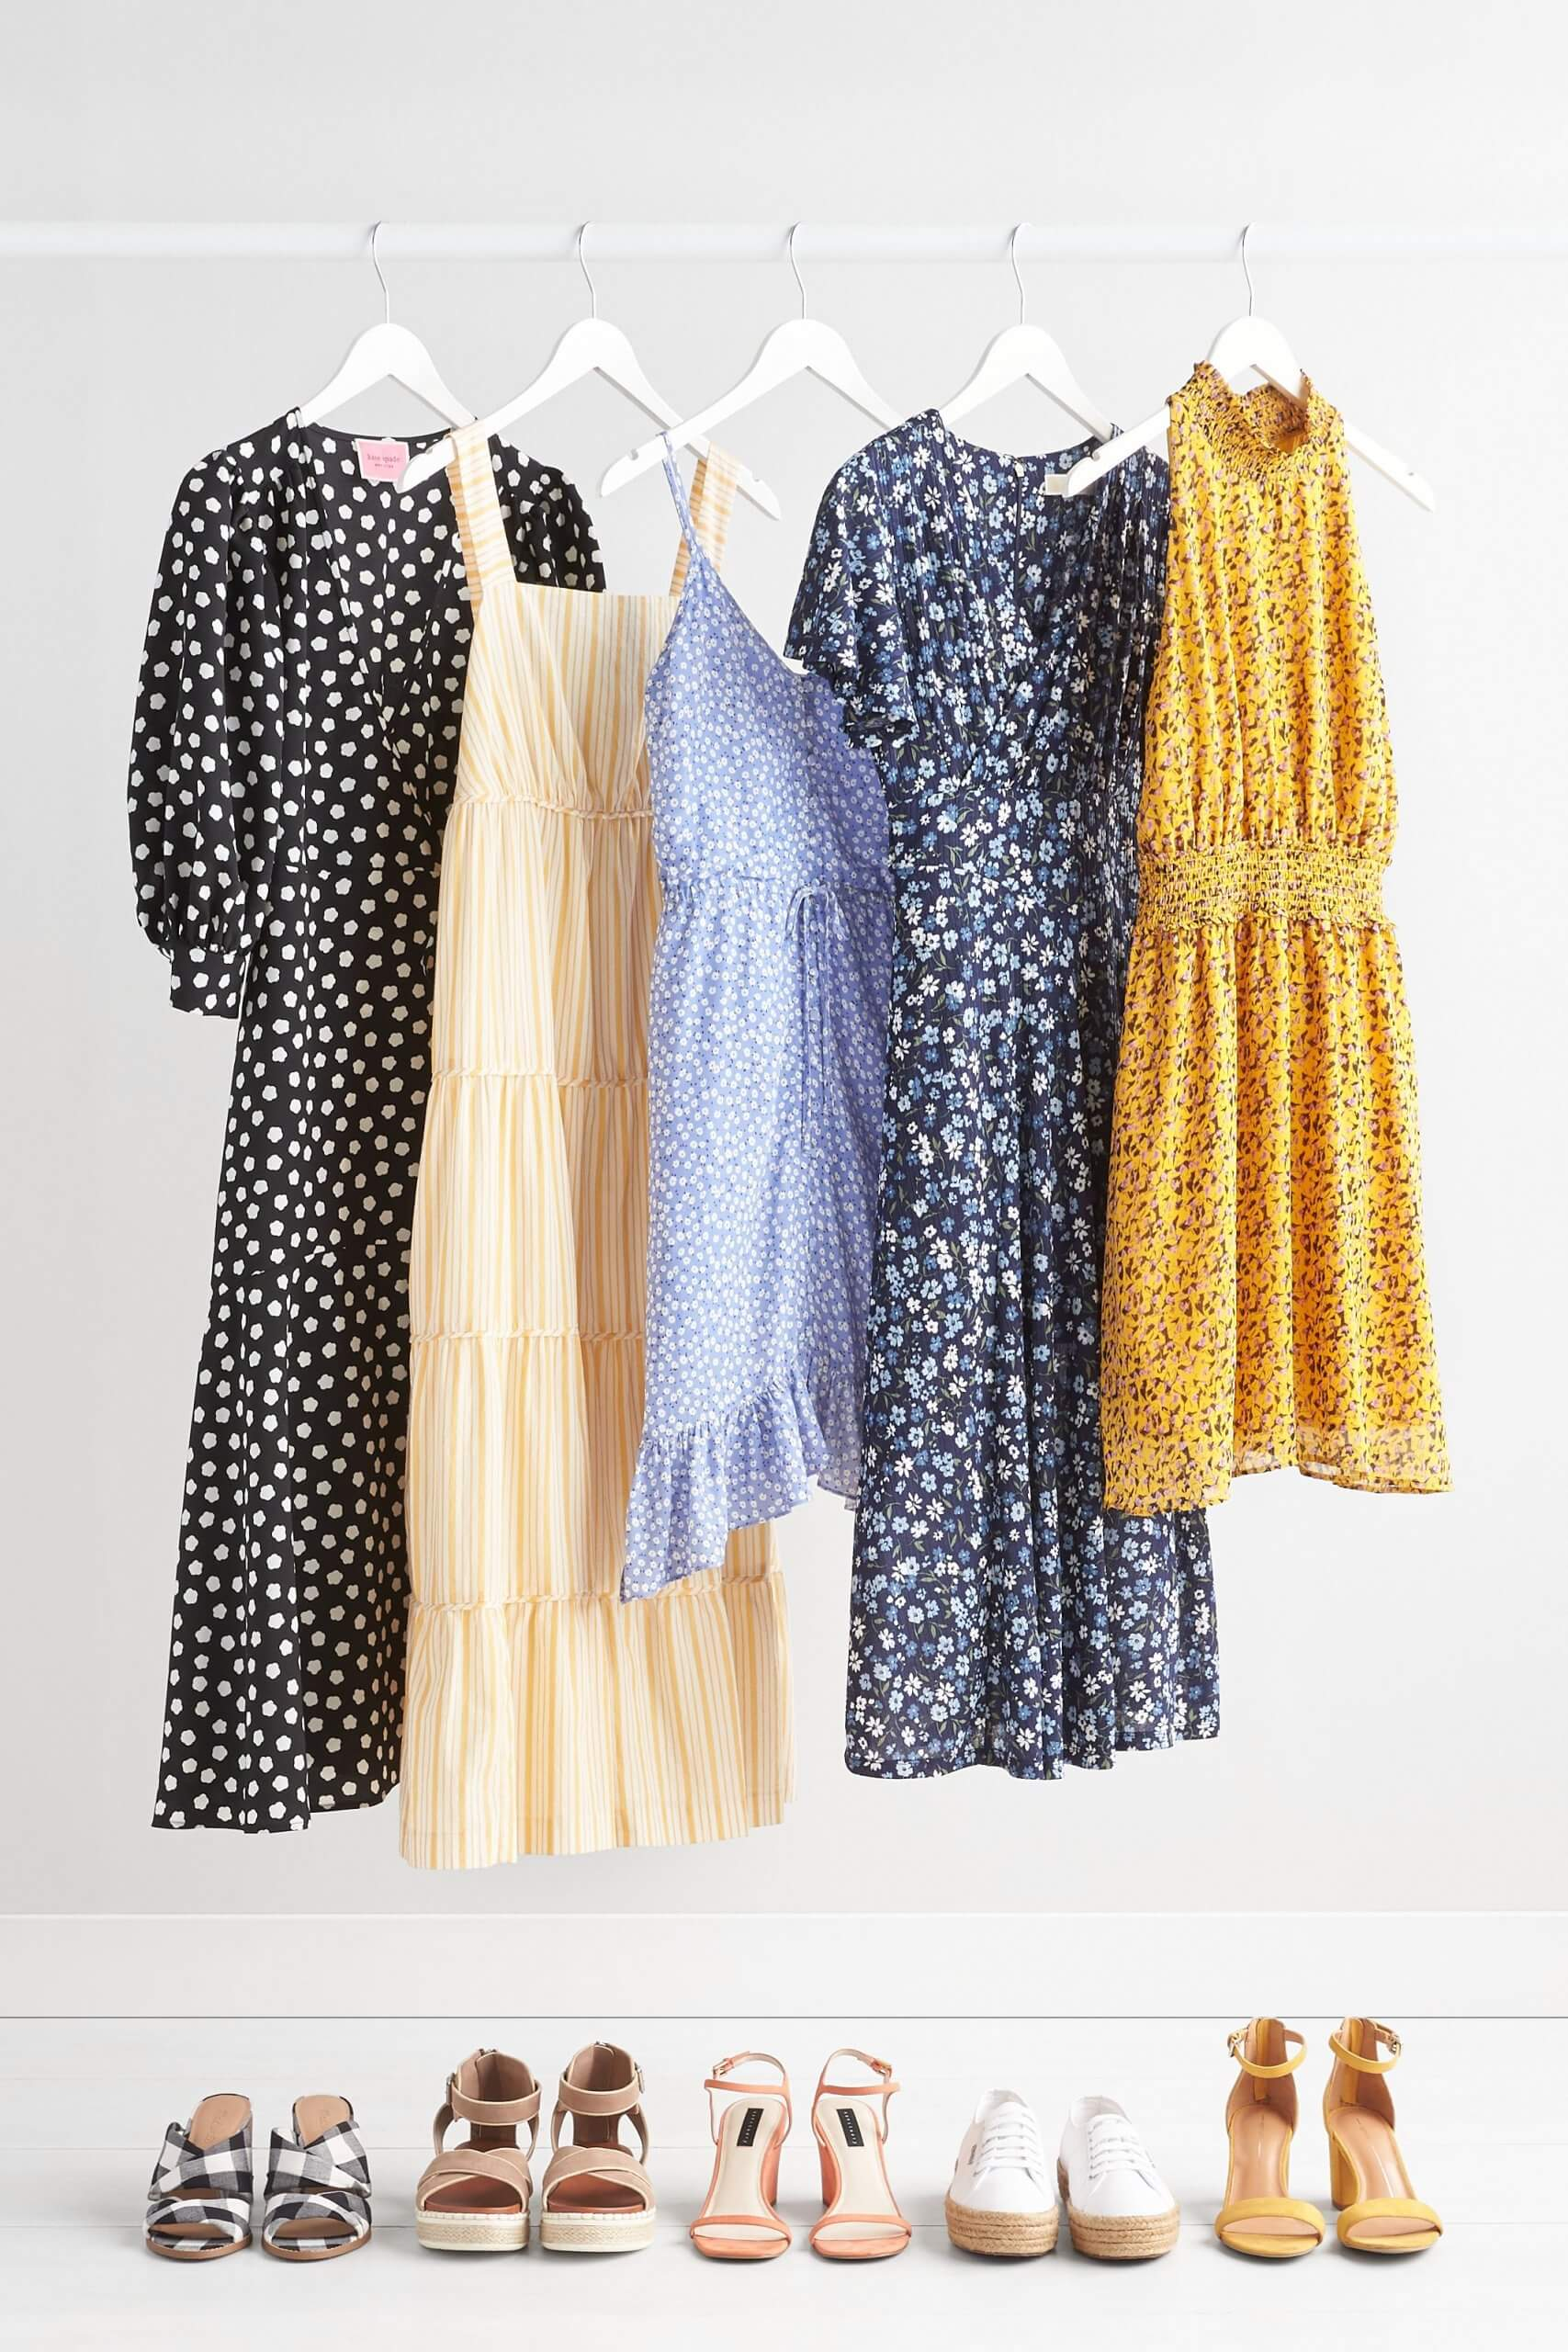 Stitch Fix Women's dresses hanging on clothing rack featuring mini, midi and maxi styles with various shoes.